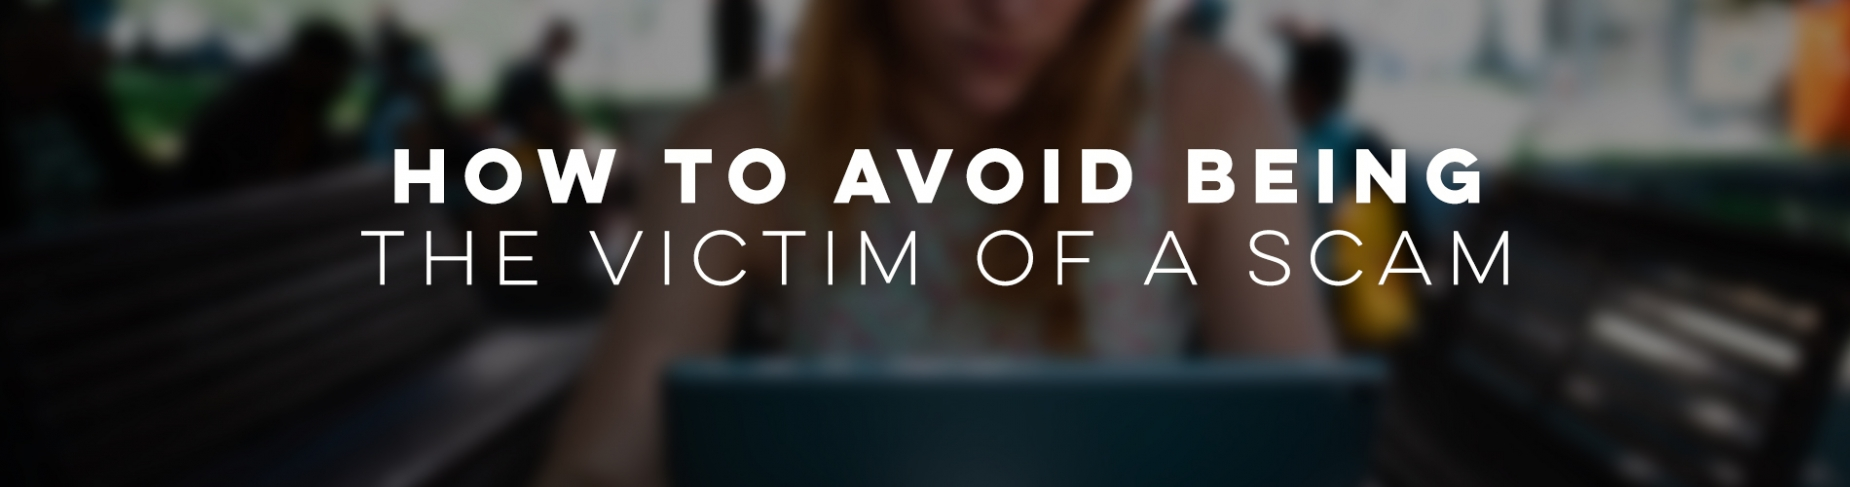 How to avoid being  the victim of a scam